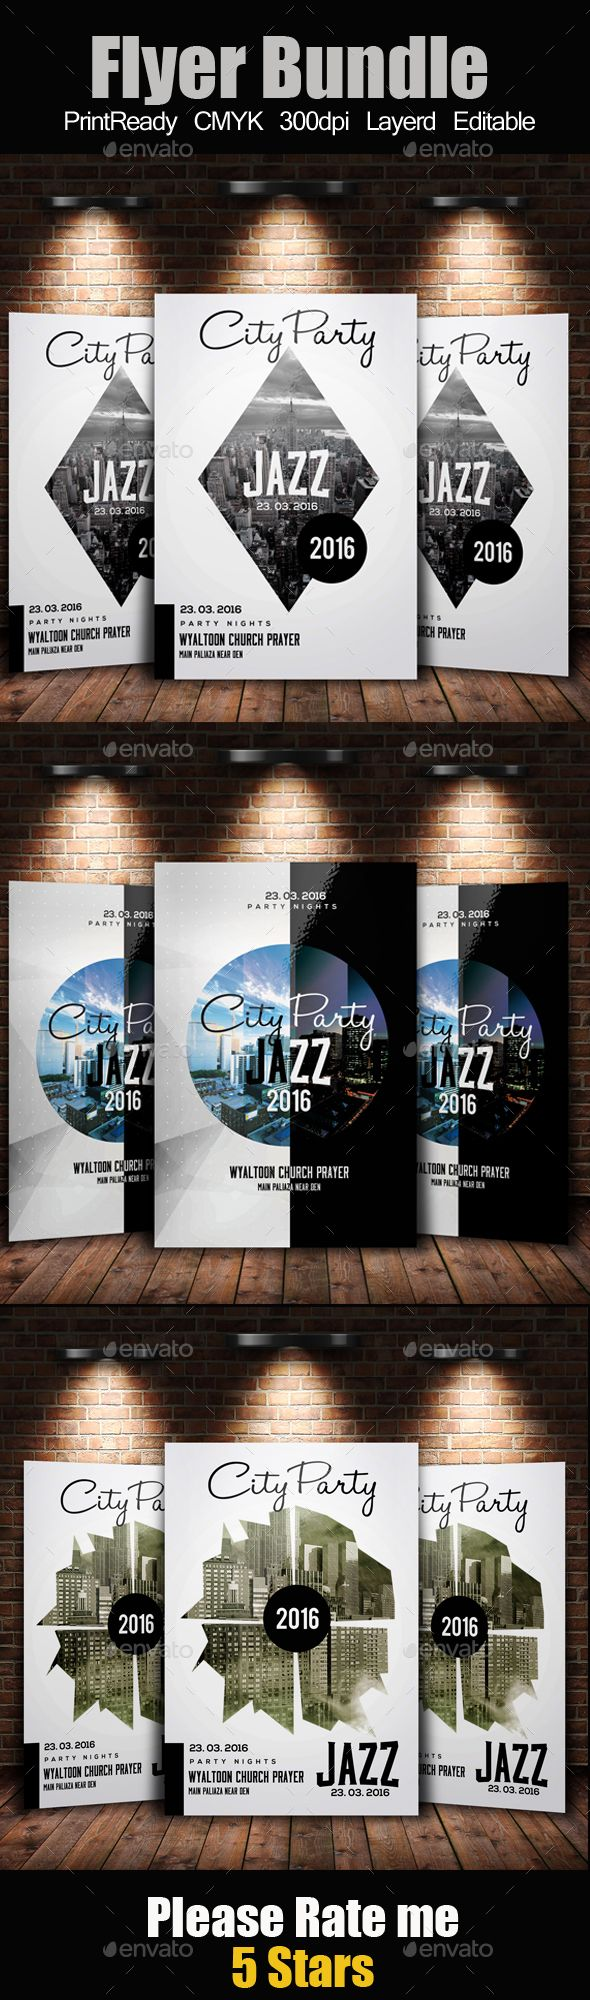 Night City Party Flyer Template Bundle 200